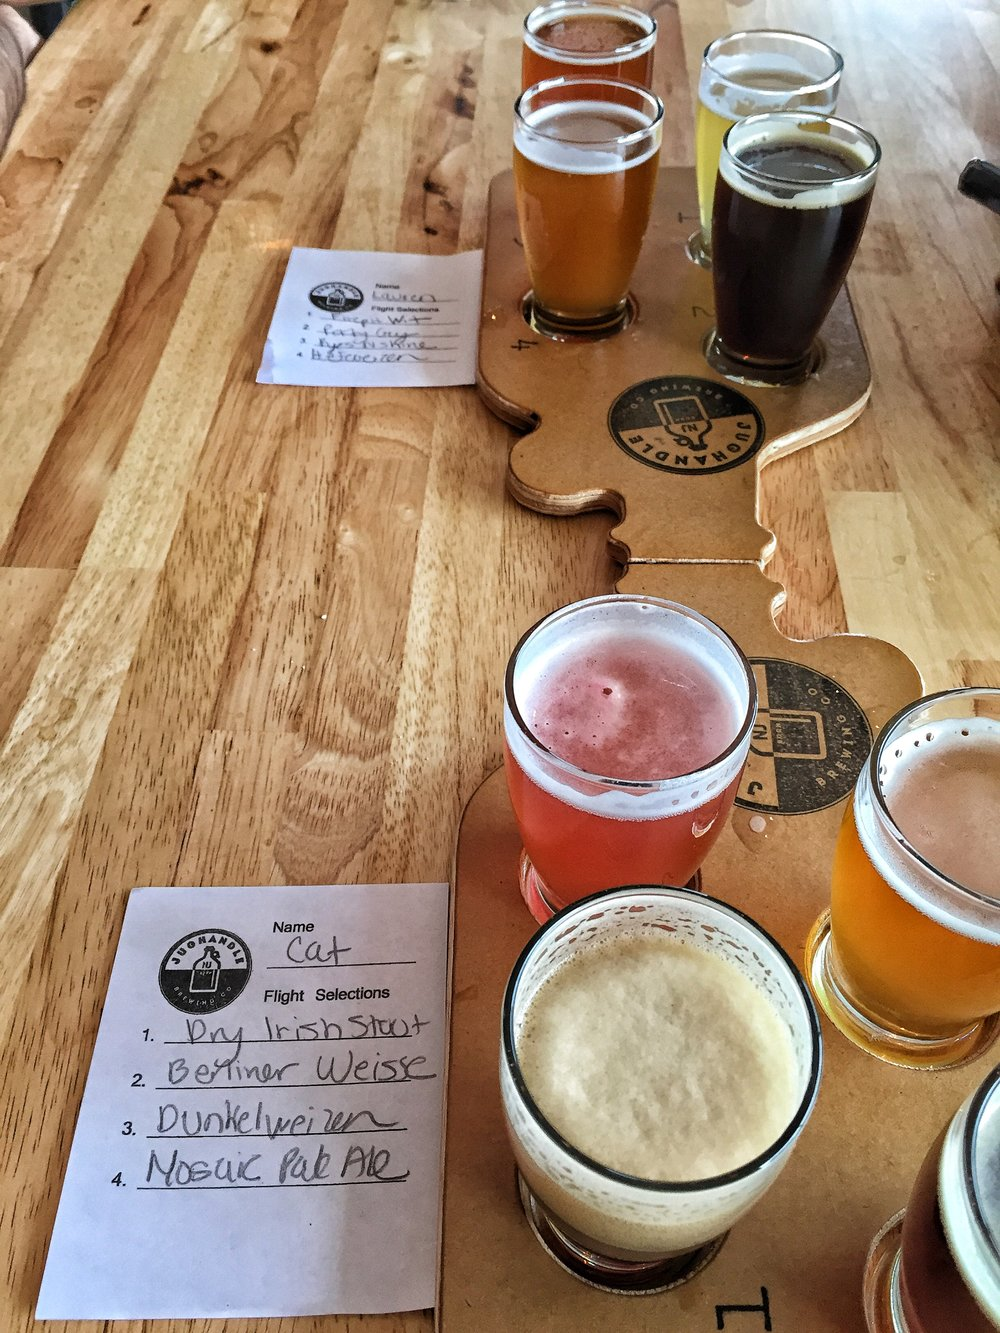 Our two flights of beer.